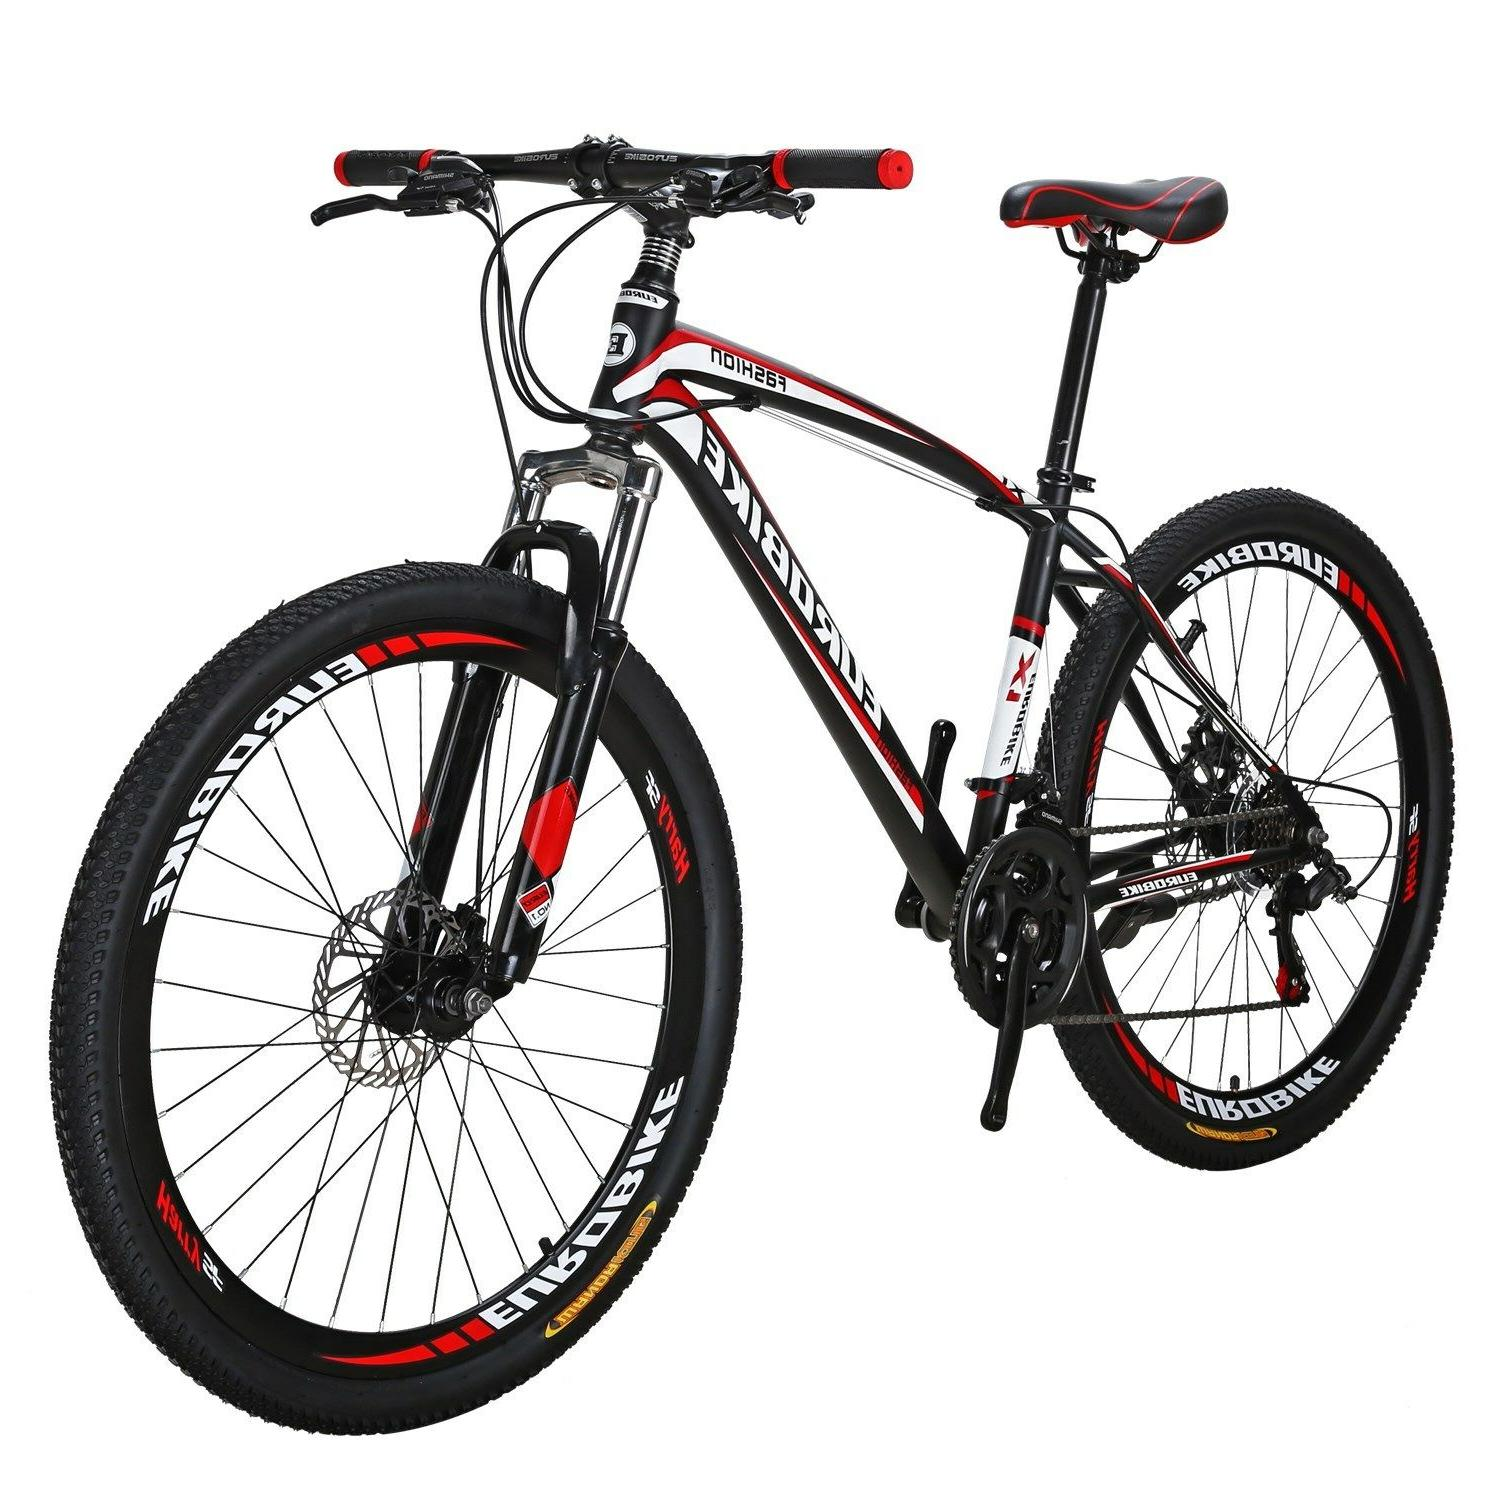 X1 Mountain Bike 27.5 inches Wheels Shimano 21 Speed Complet